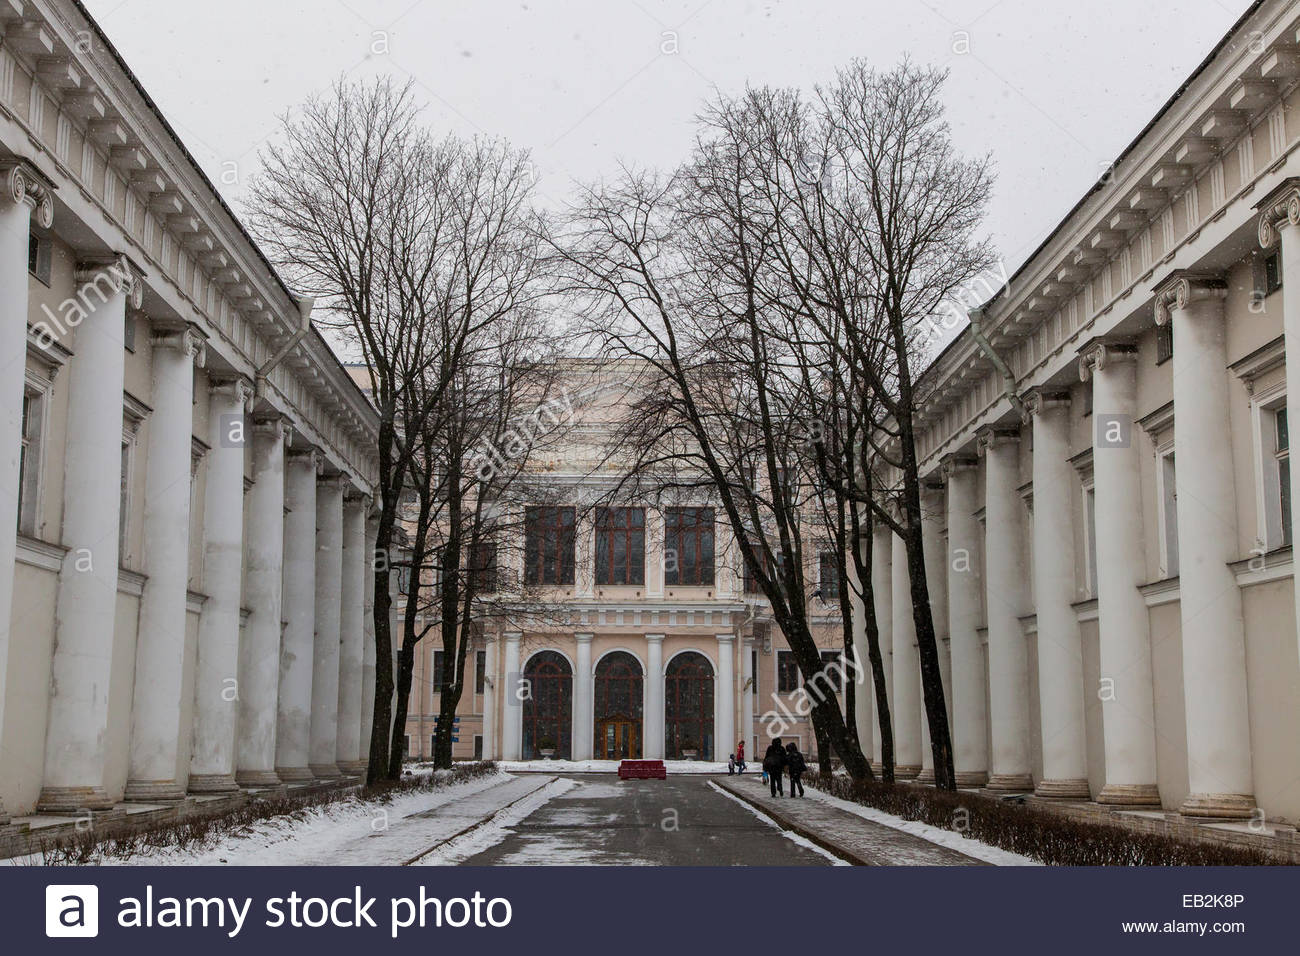 The Alexandrinsky, or Russian State Pushkin Academy Drama Theater, viewed from Zodchego Rossi Street. - Stock Image